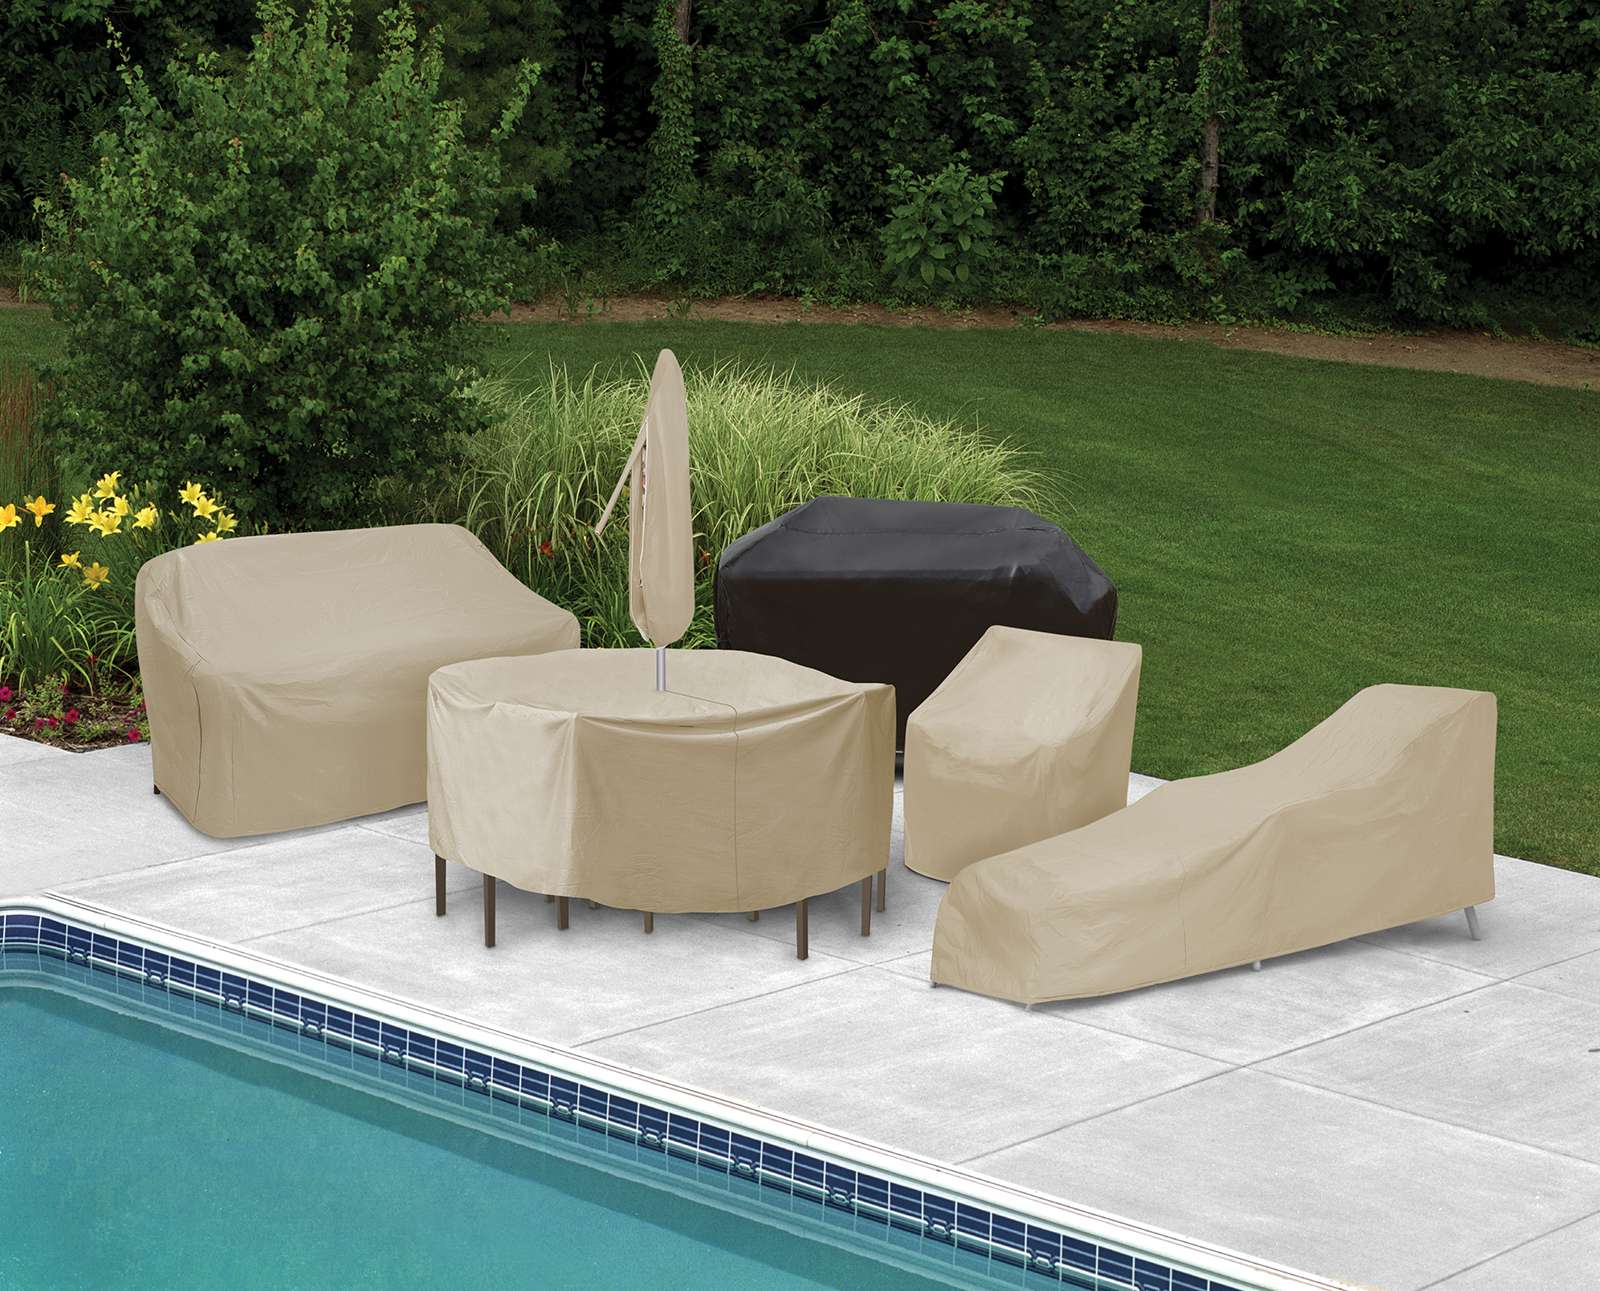 Pci protective covers for Pci outdoor furniture covers